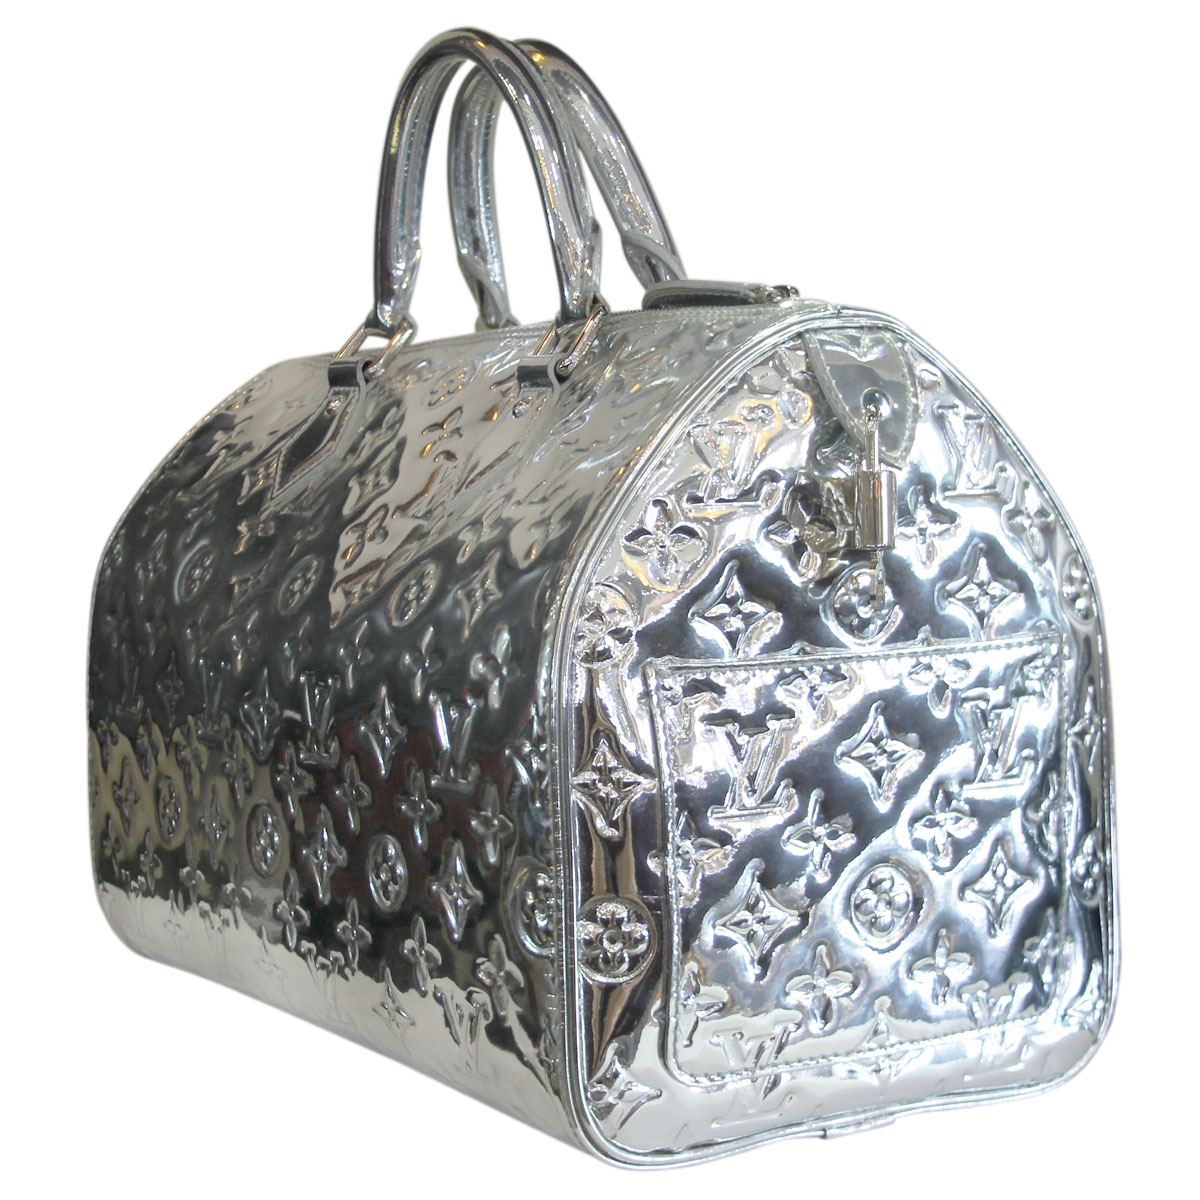 Louis vuitton speedy 30 silver monogram miroir handbag for Miroir louis vuitton